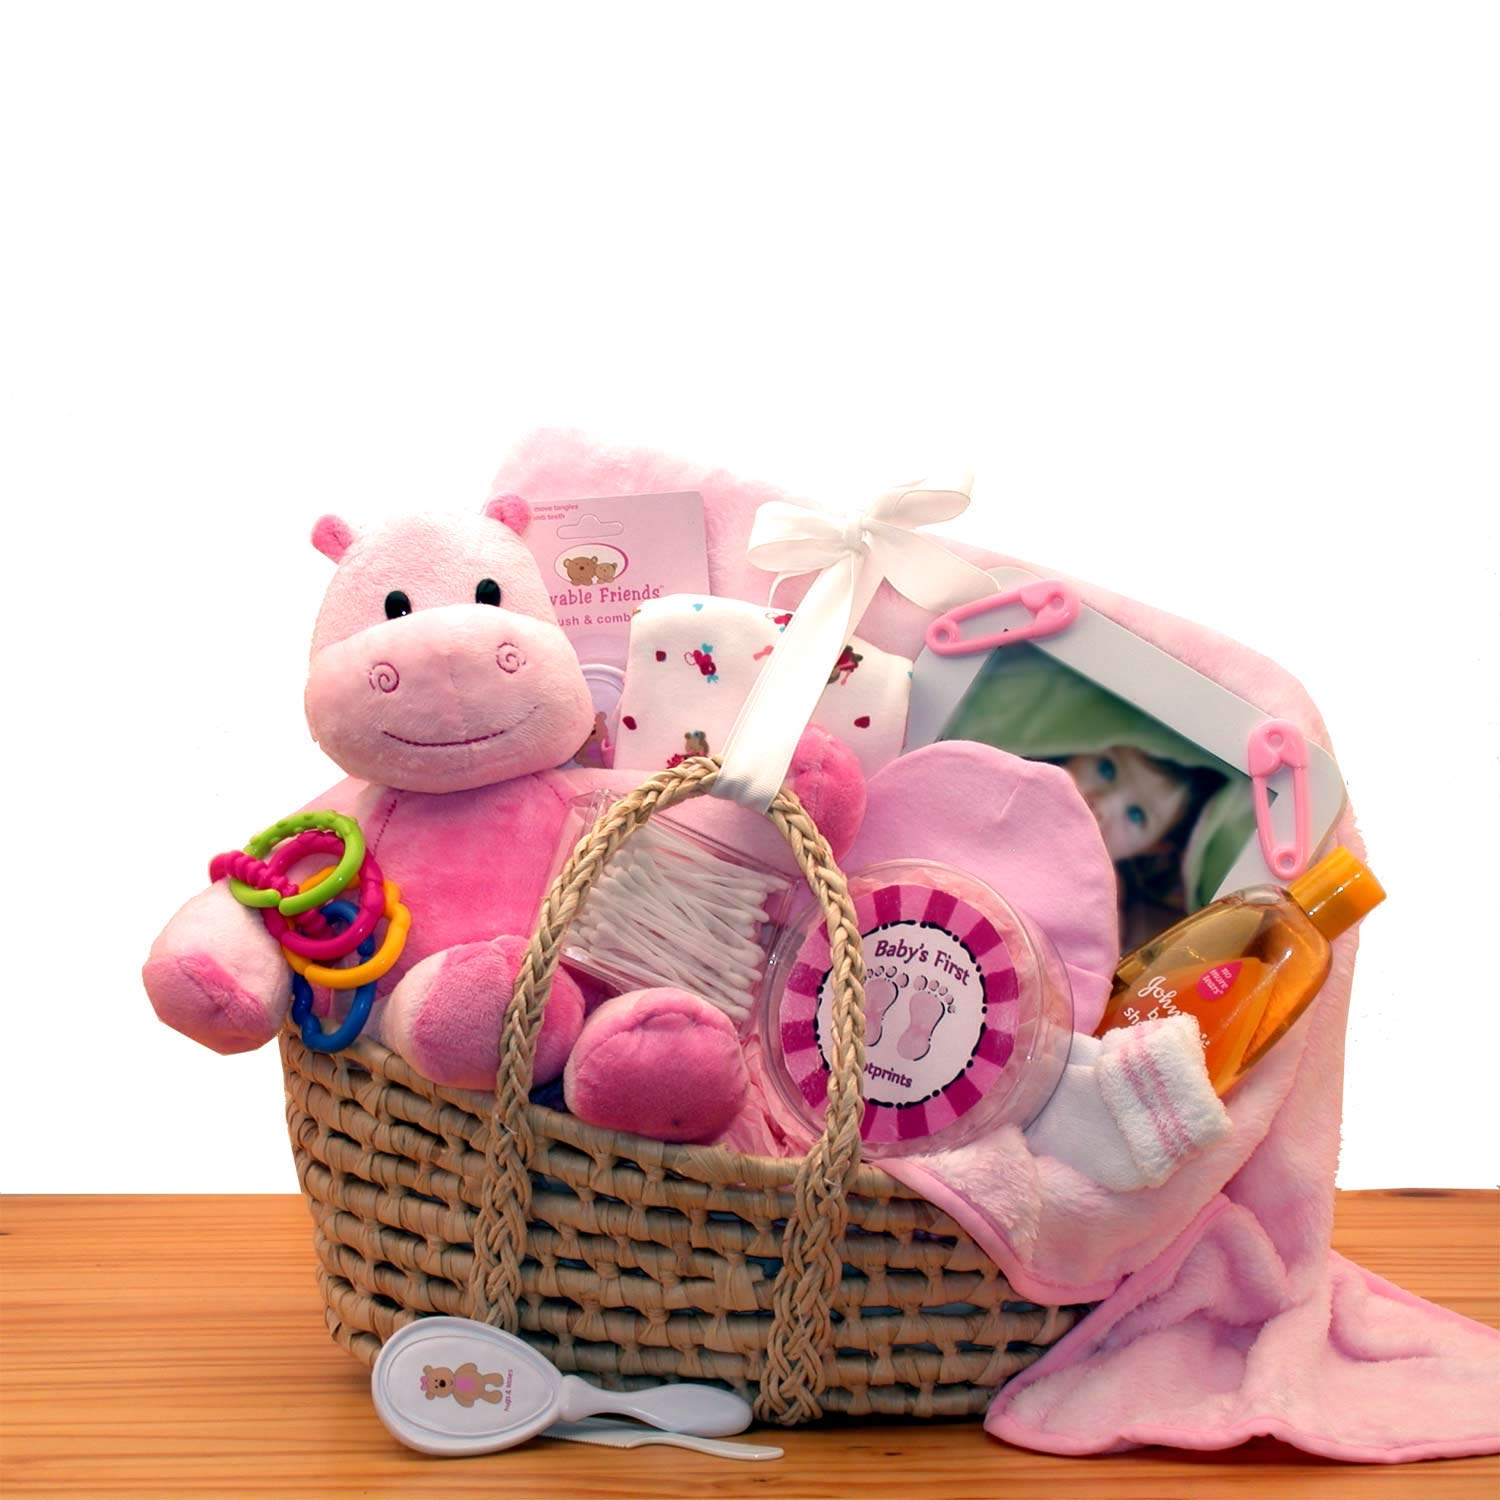 Gift Basket Drop Shipping Our Precious Baby New Baby Carrier -Medium Pink